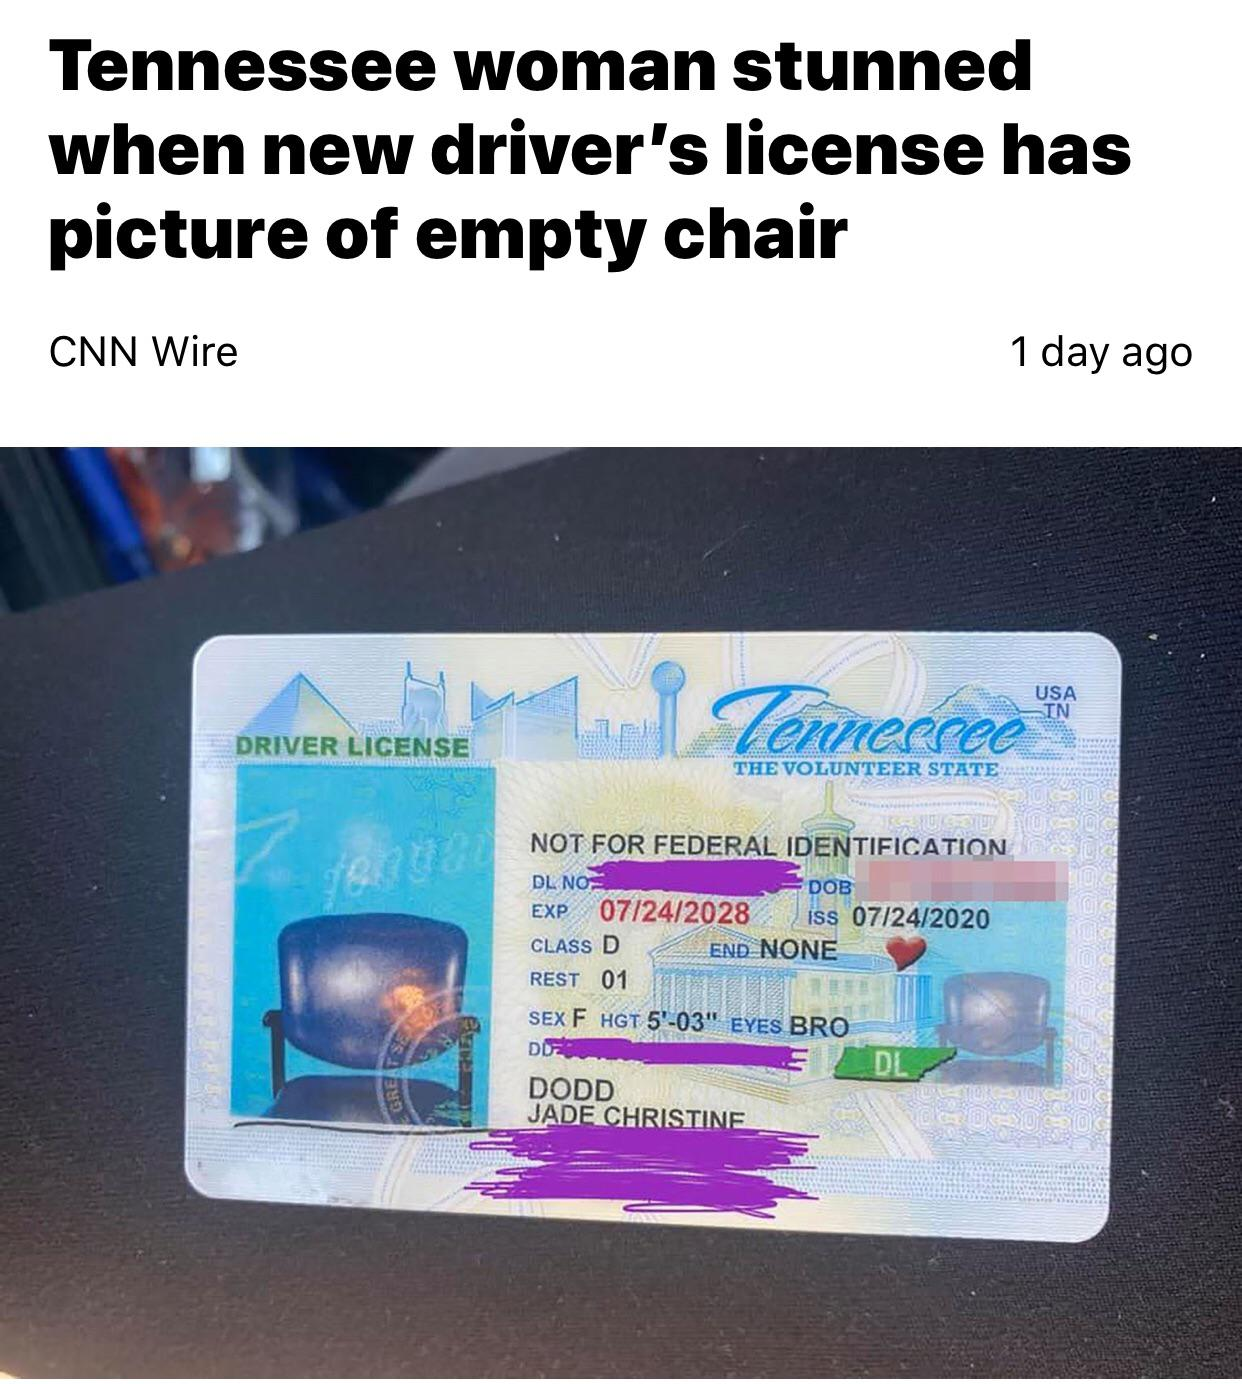 Took The Driver's License Photo Boss